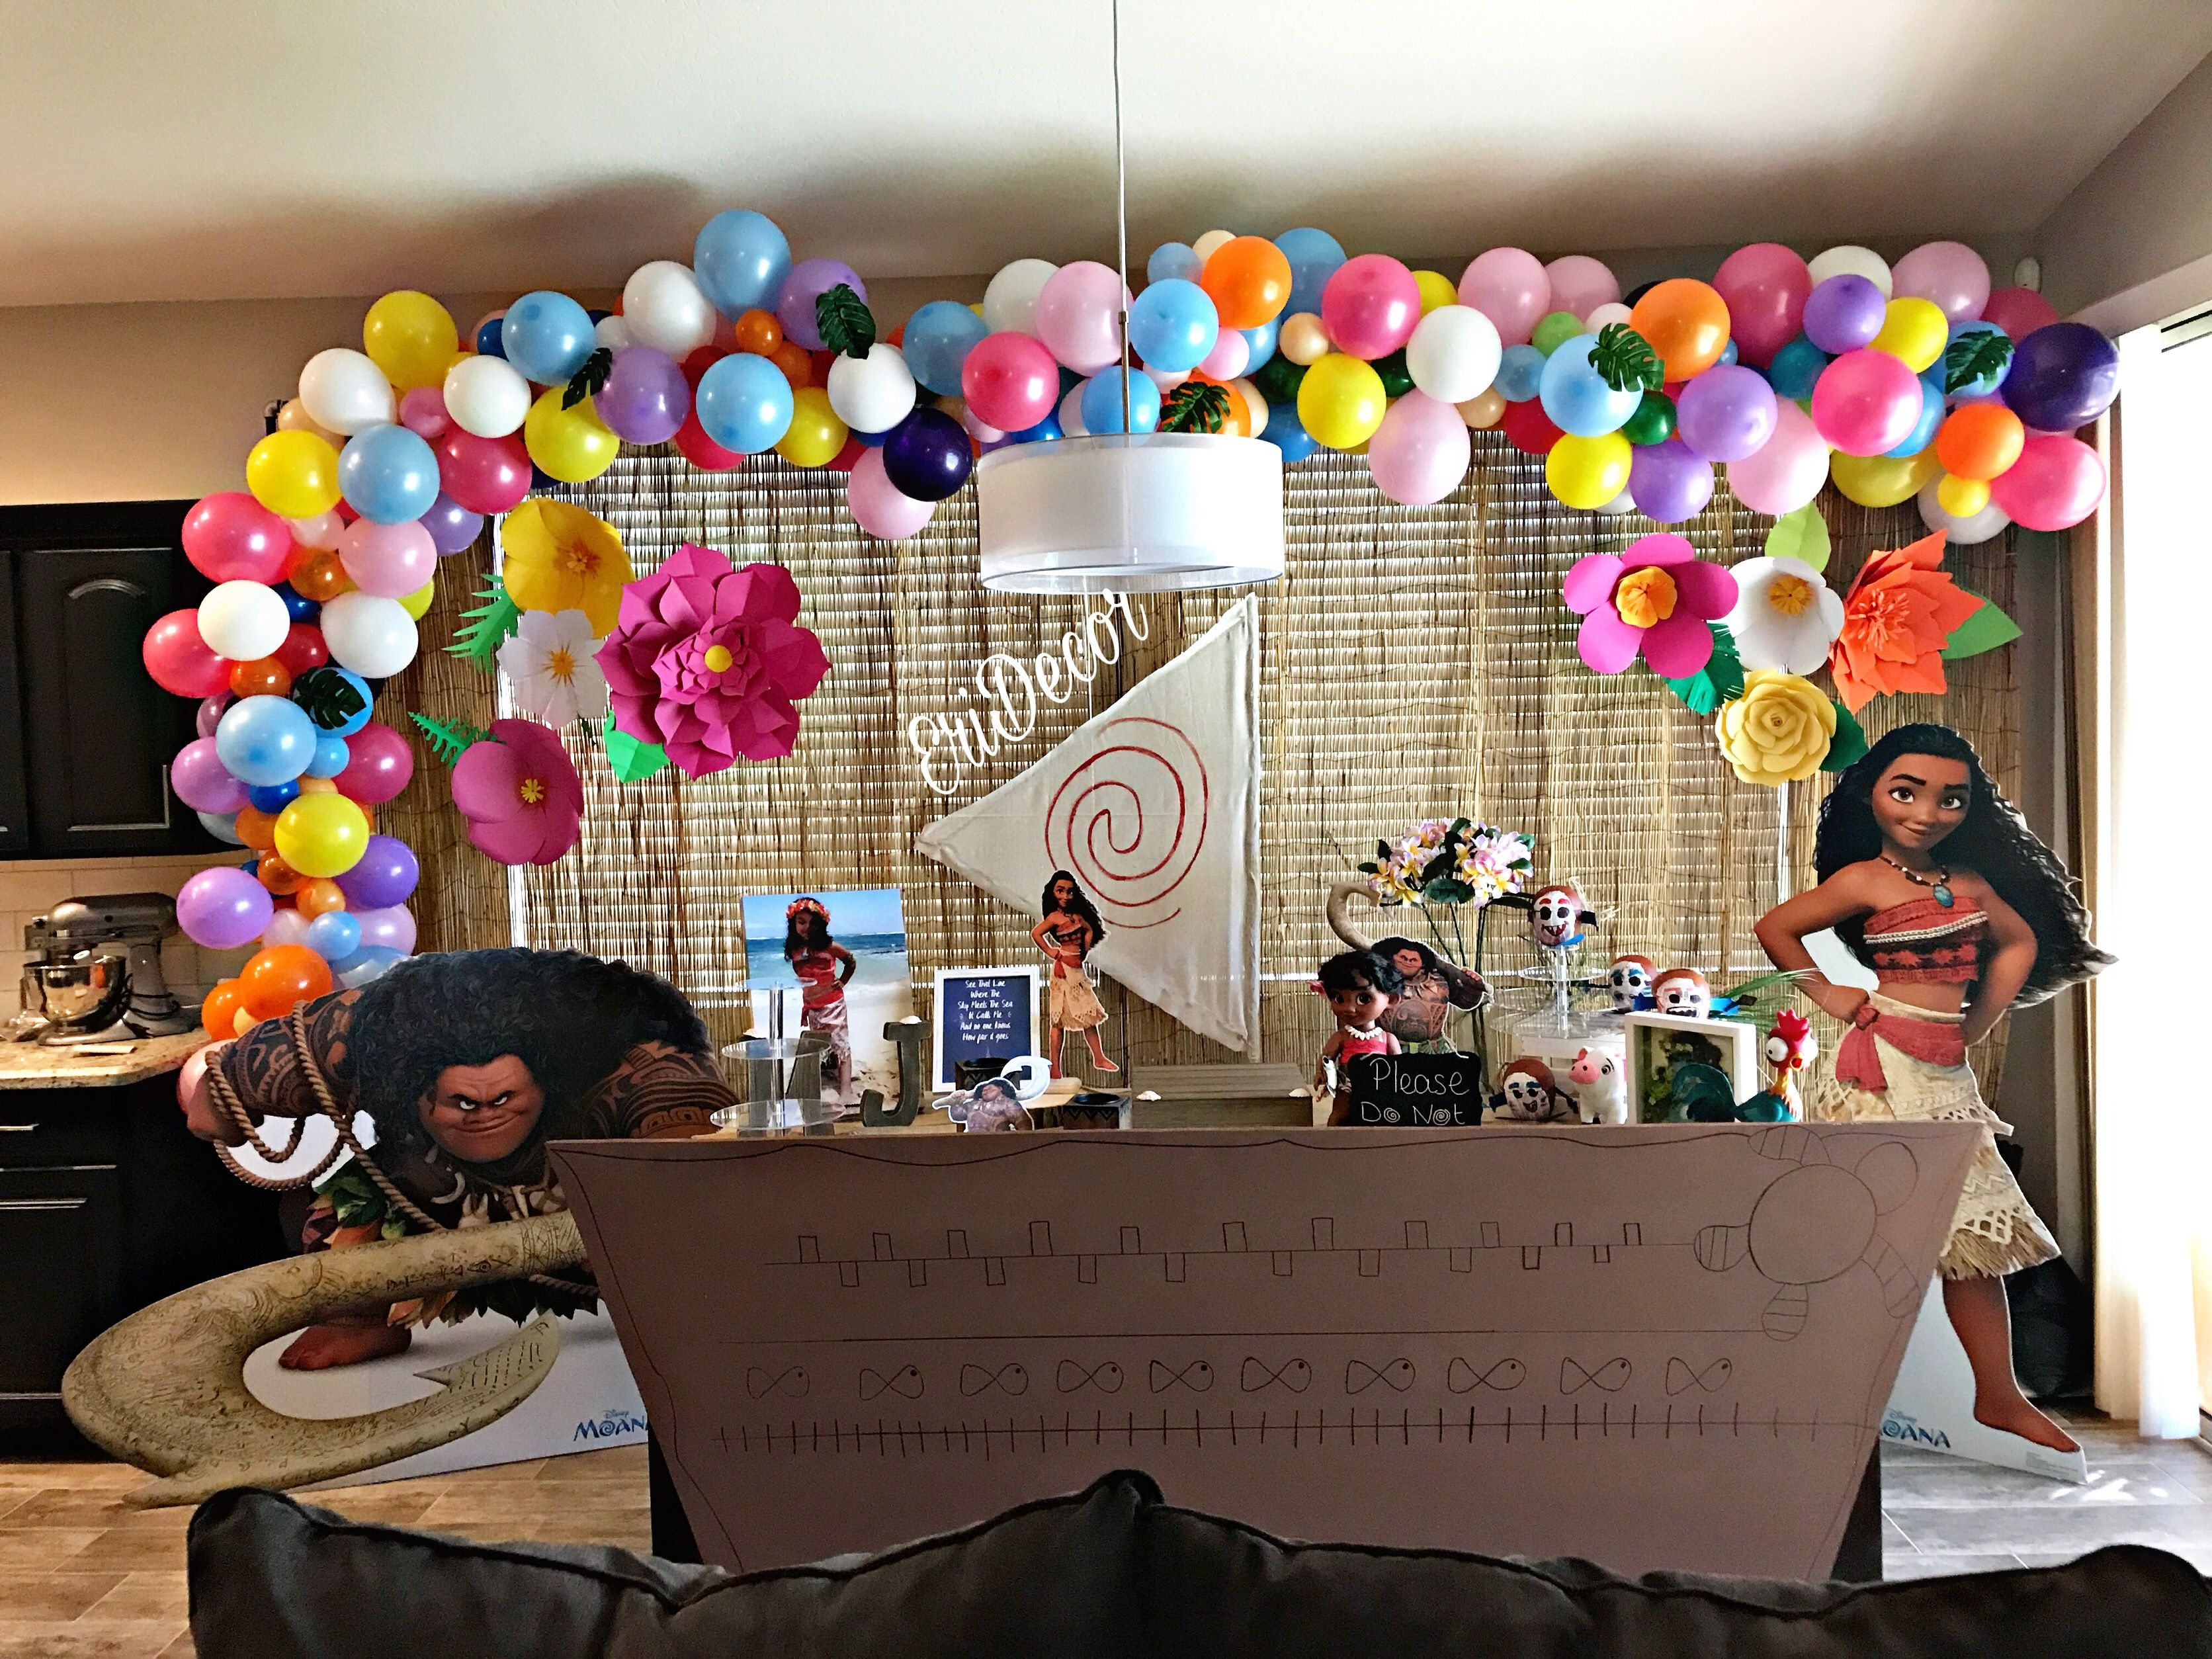 Moana Main Table Party Decor